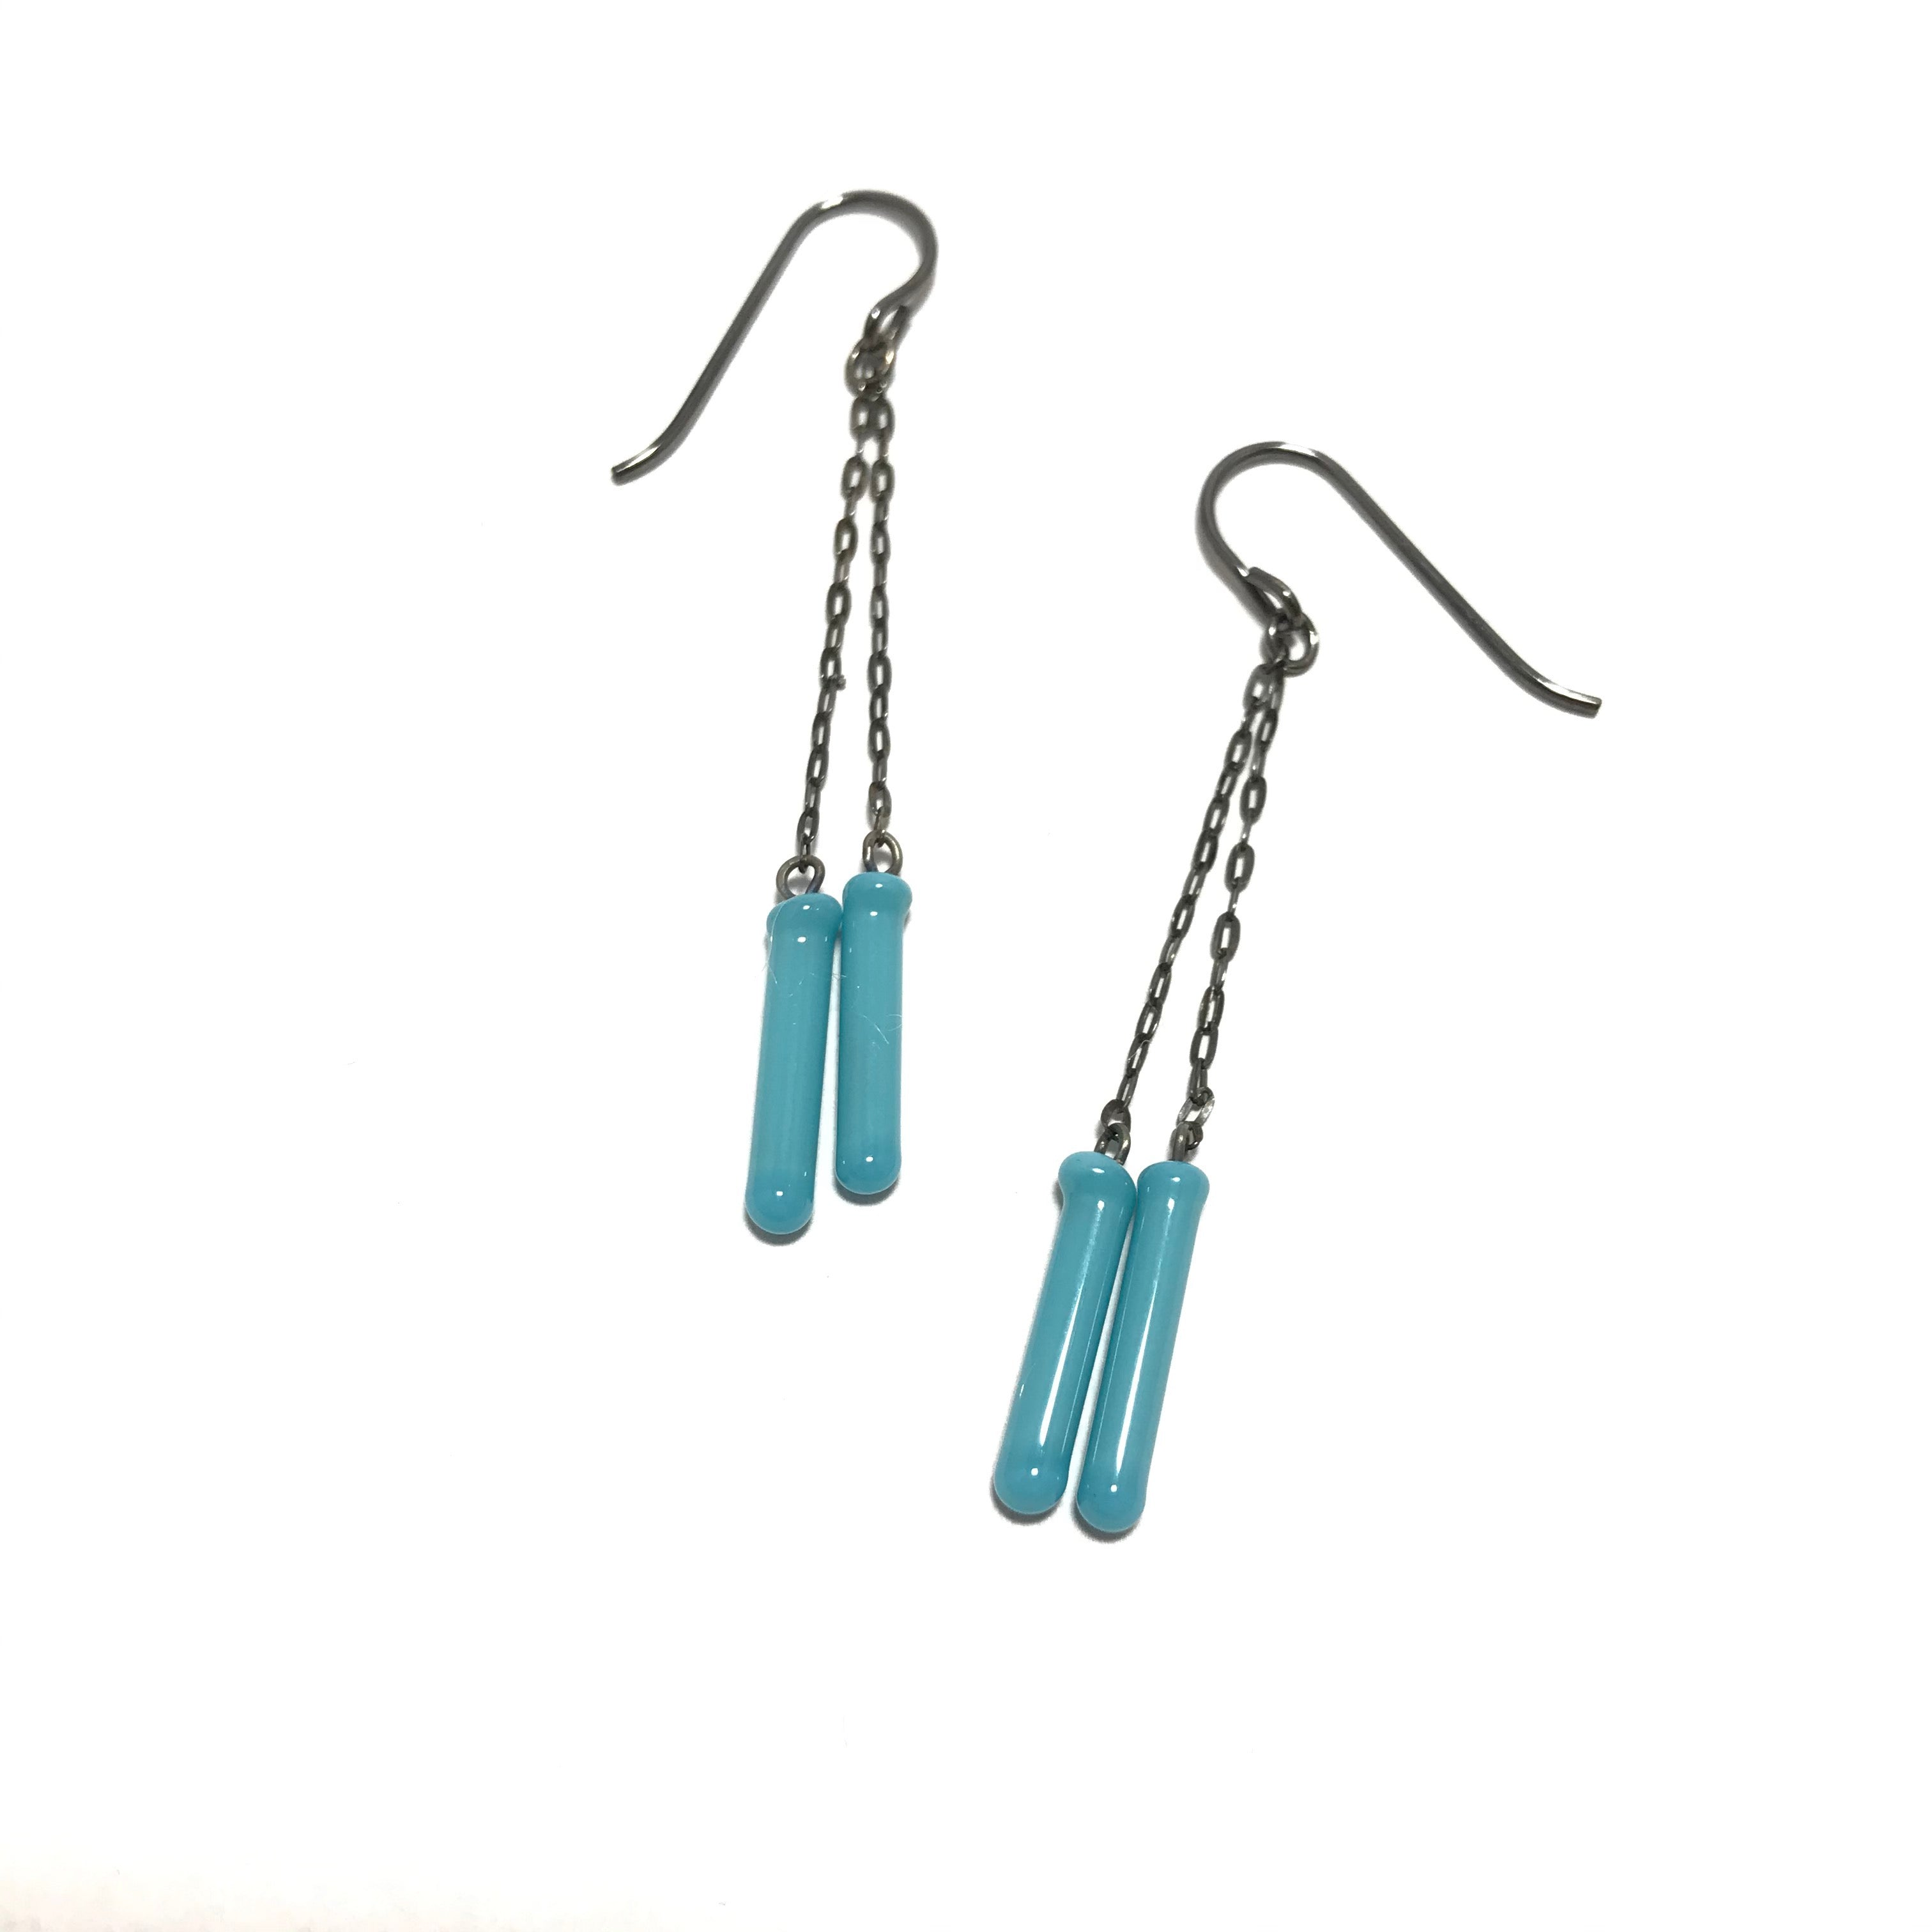 Krista Bermeo Double Fosforo Earrings